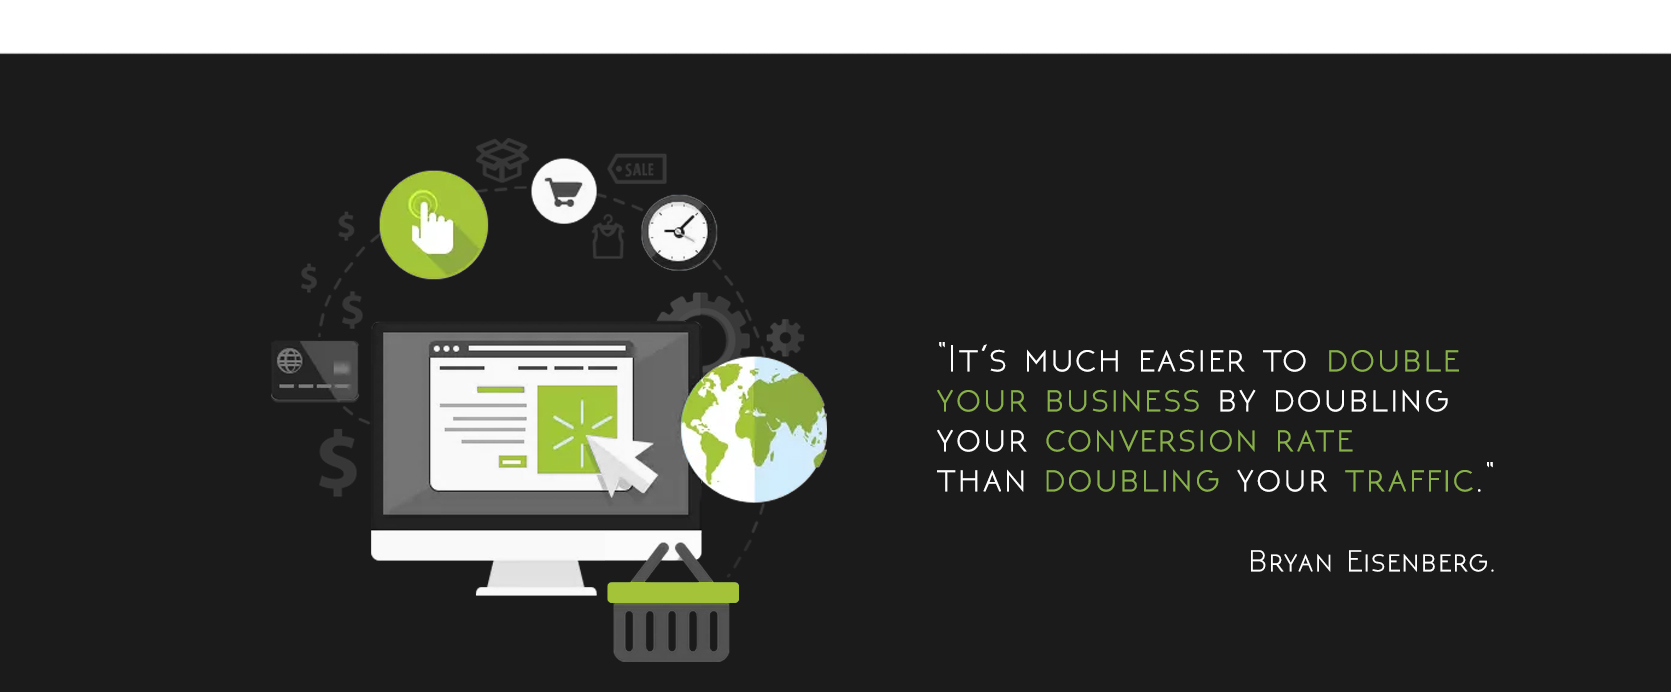 It's much easier to double your business by doubling your conversion rate than by doubling your traffic. Jeff Eisenberg, adloonix quote